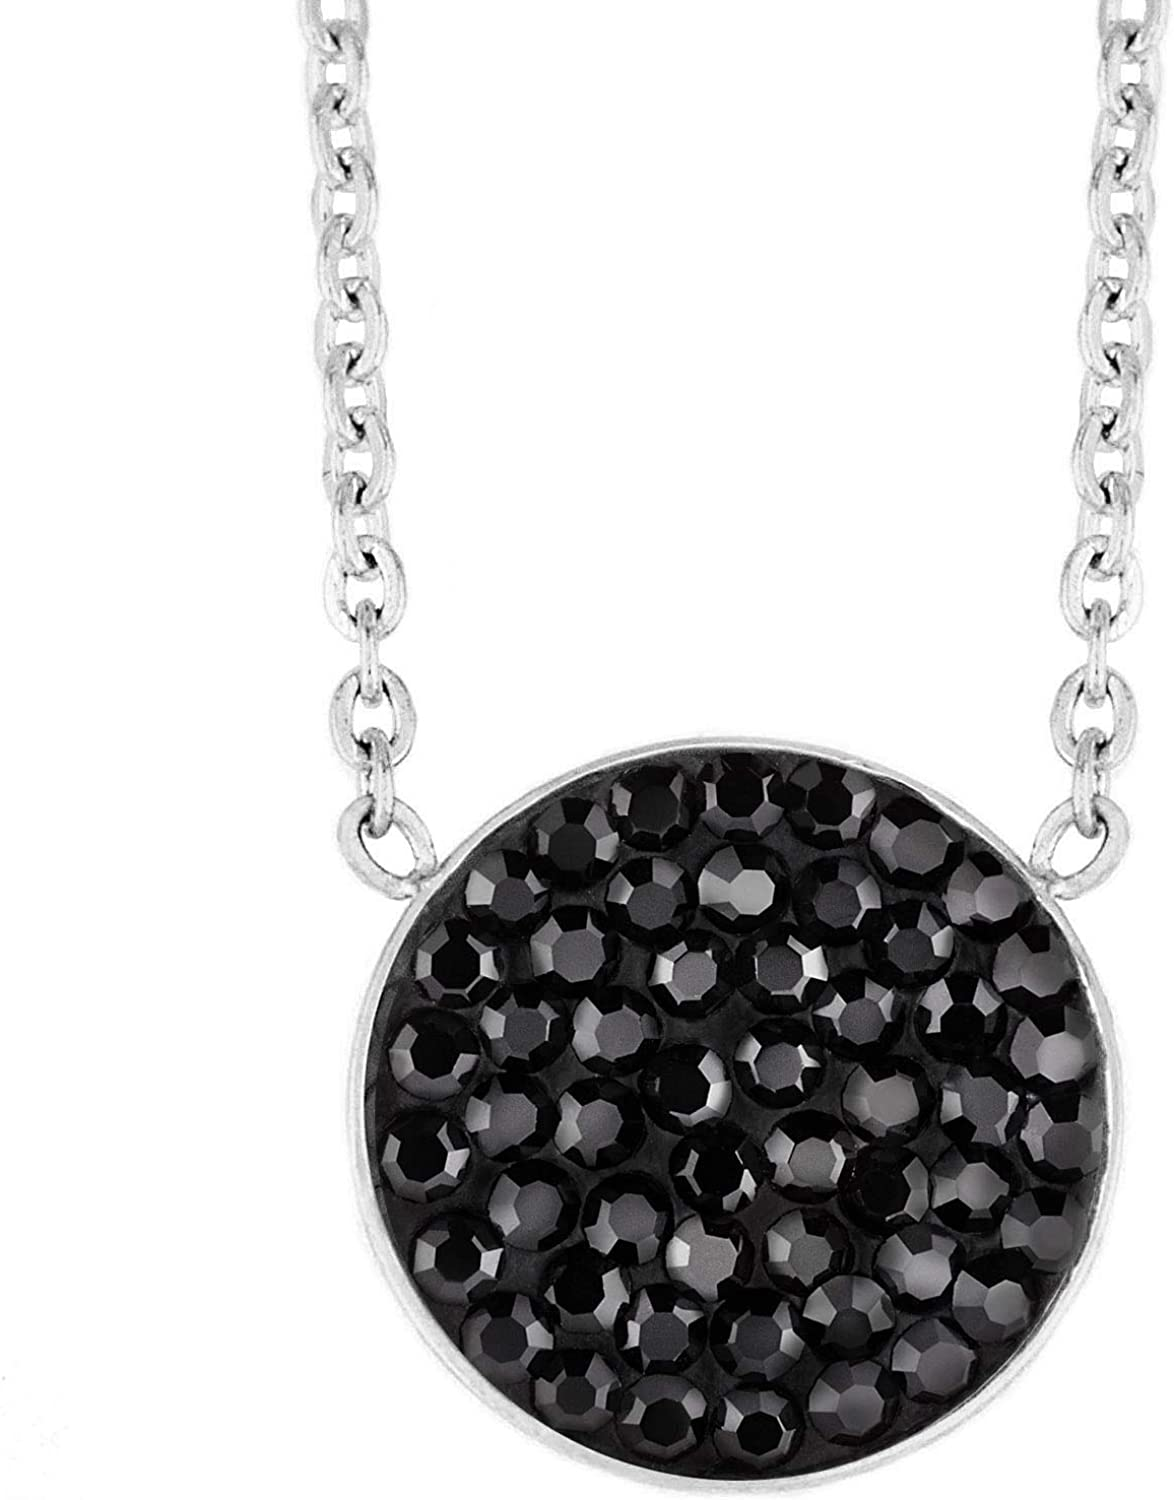 West Coast Jewelry Sterling Silver Cubic Zirconia Pendant and Chain 18 Inch